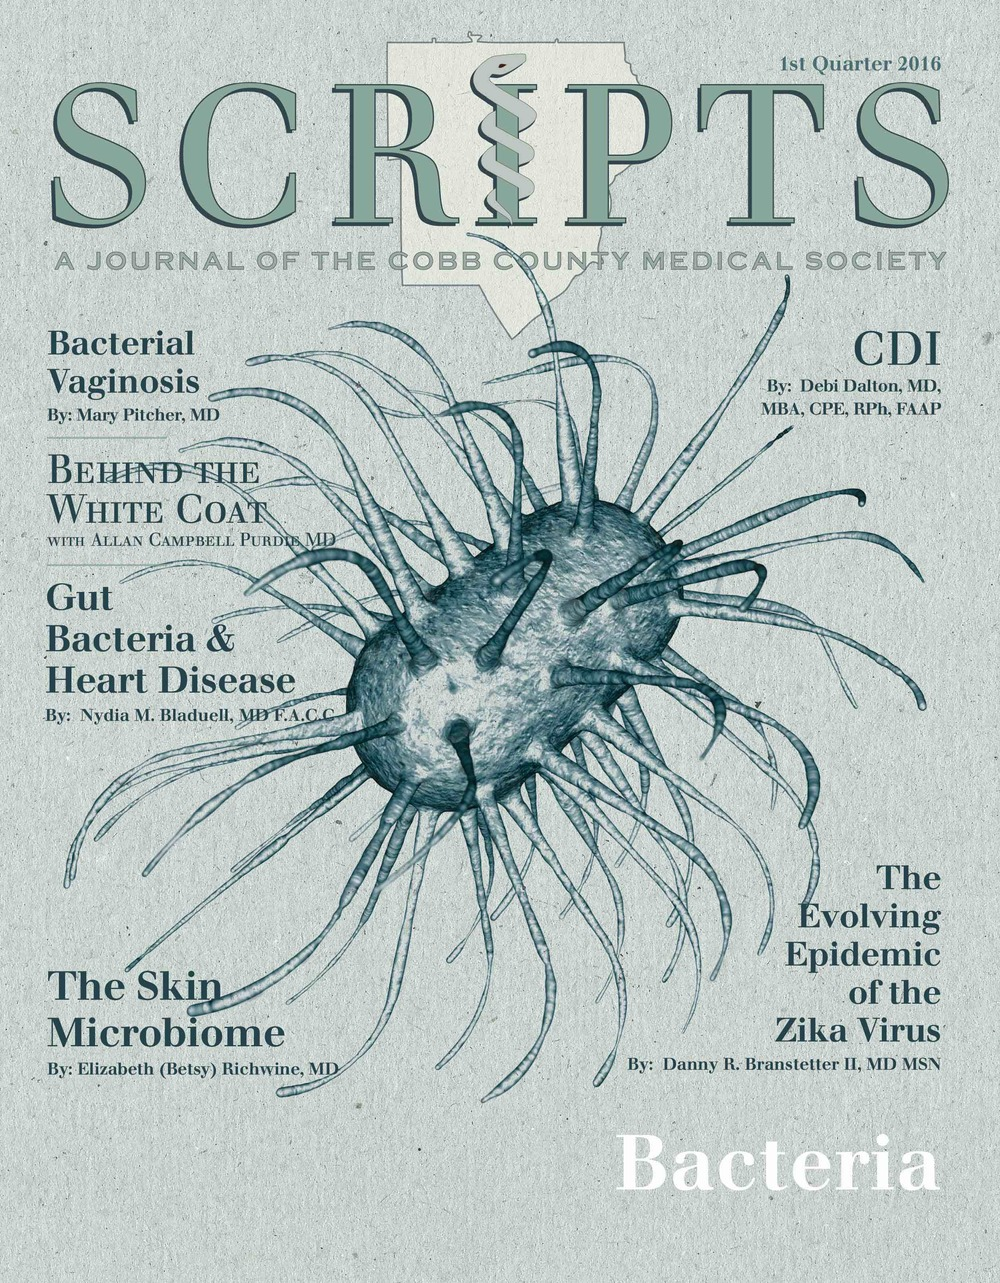 SCRIPTS_1ST2016_pagescover.jpg